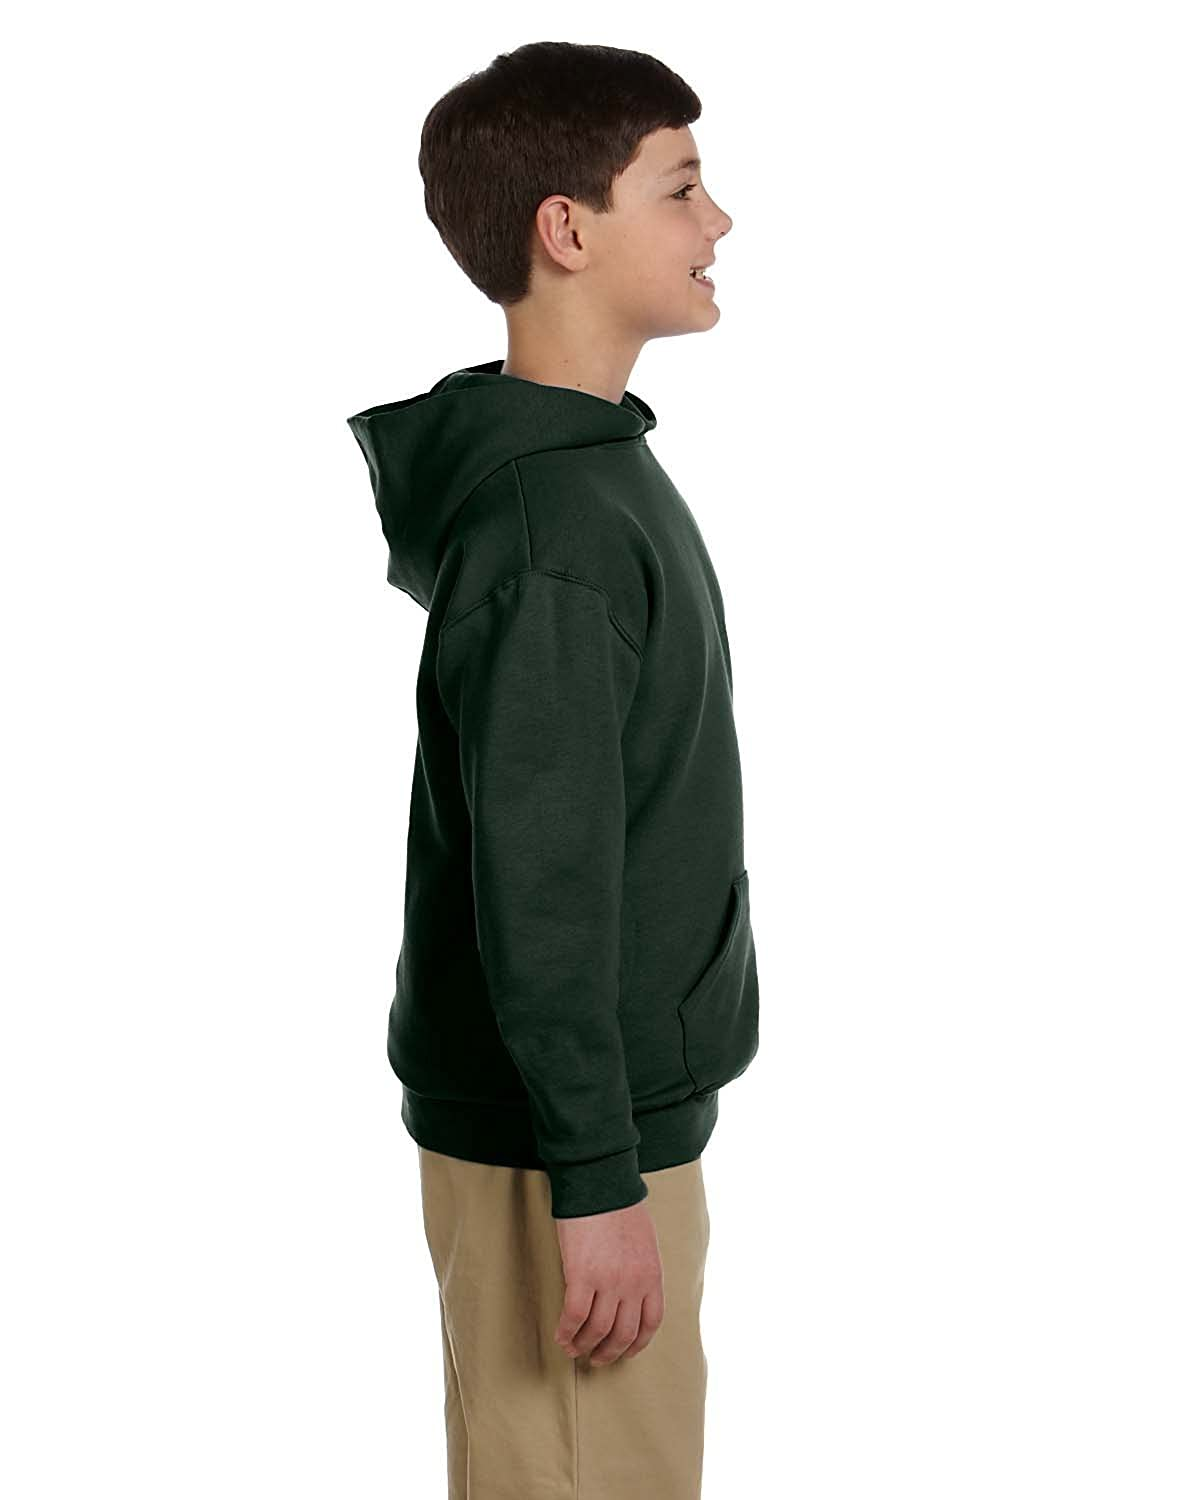 Forest Green Jerzees 50//50 Youth Hooded Pullover Sweatshirt